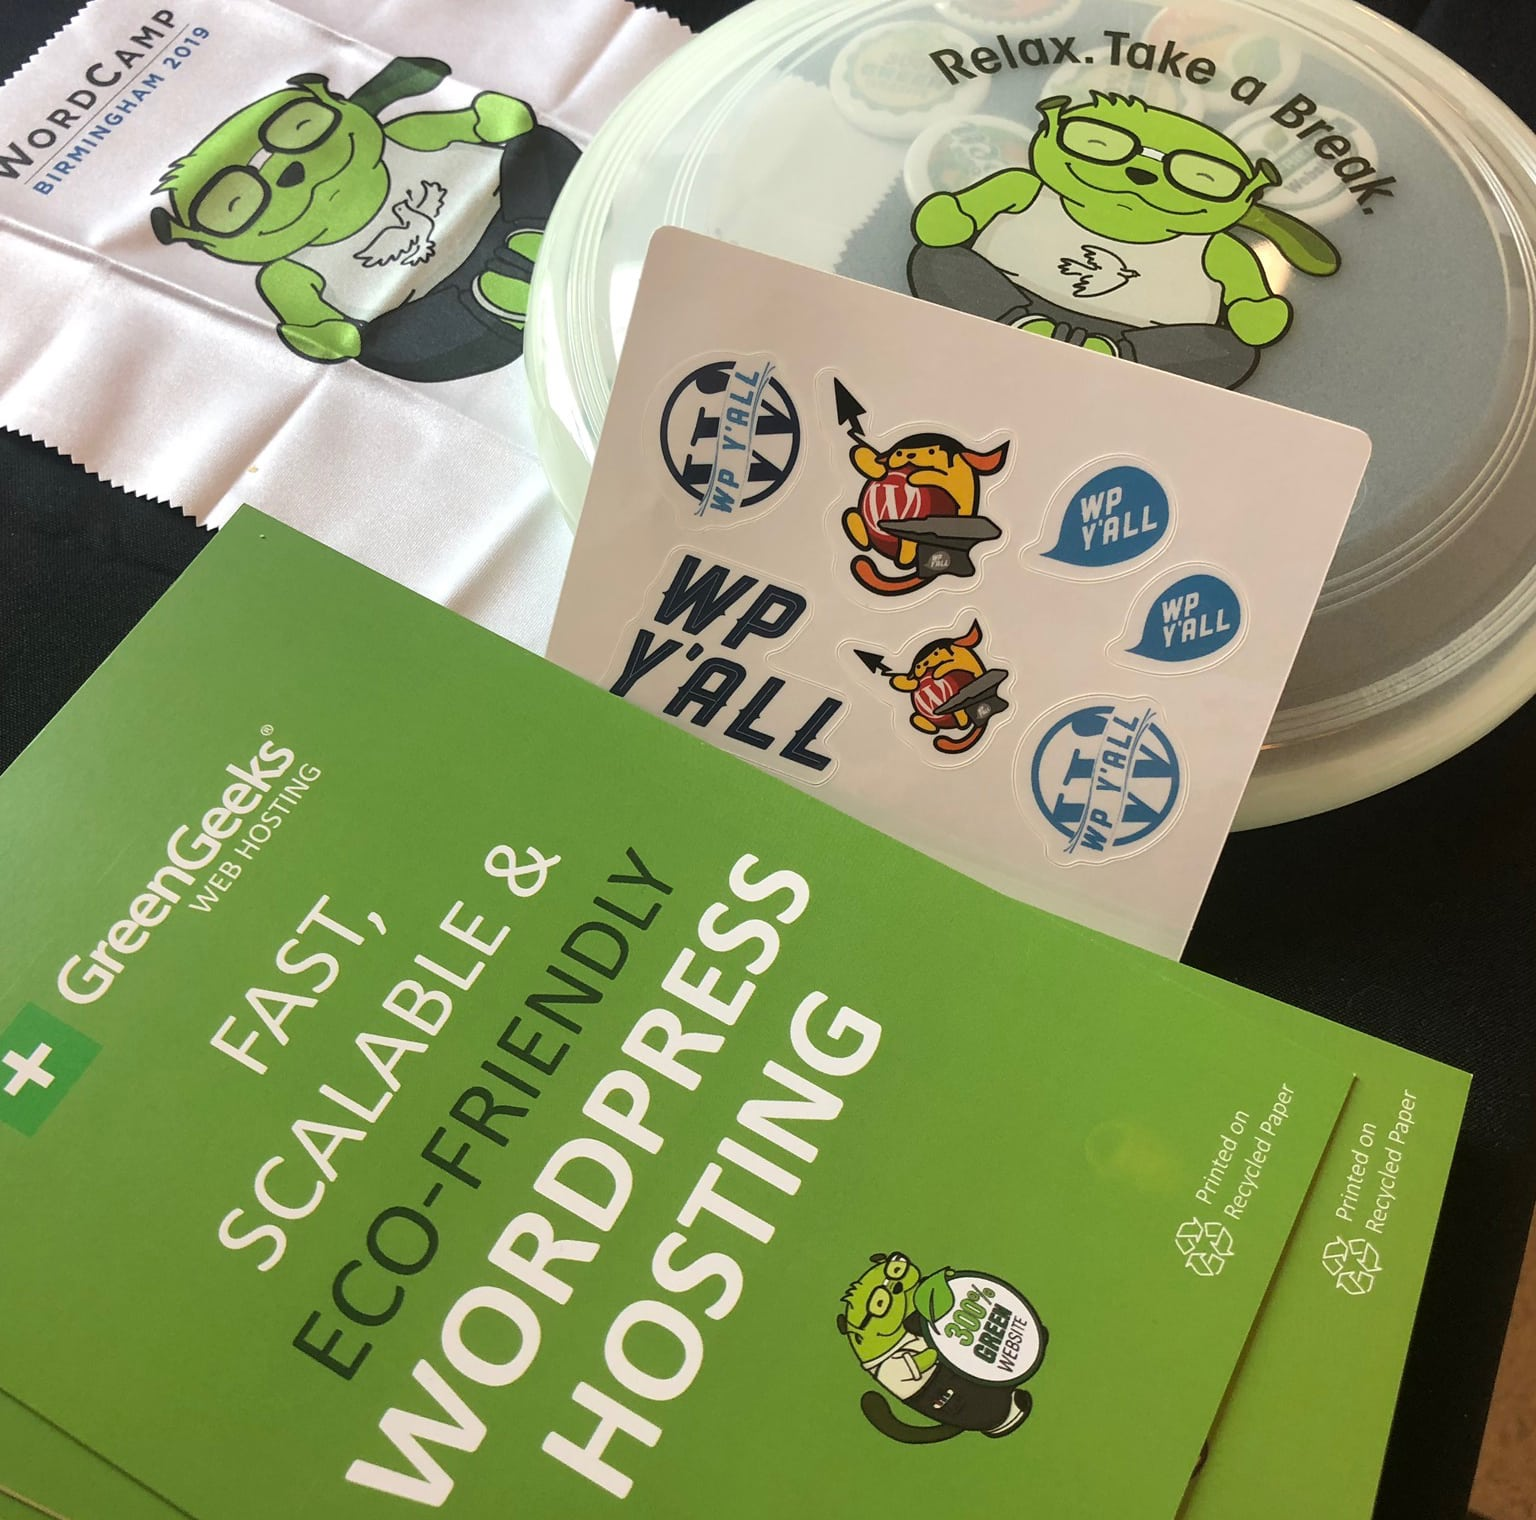 WordCamp Birmingham Swag